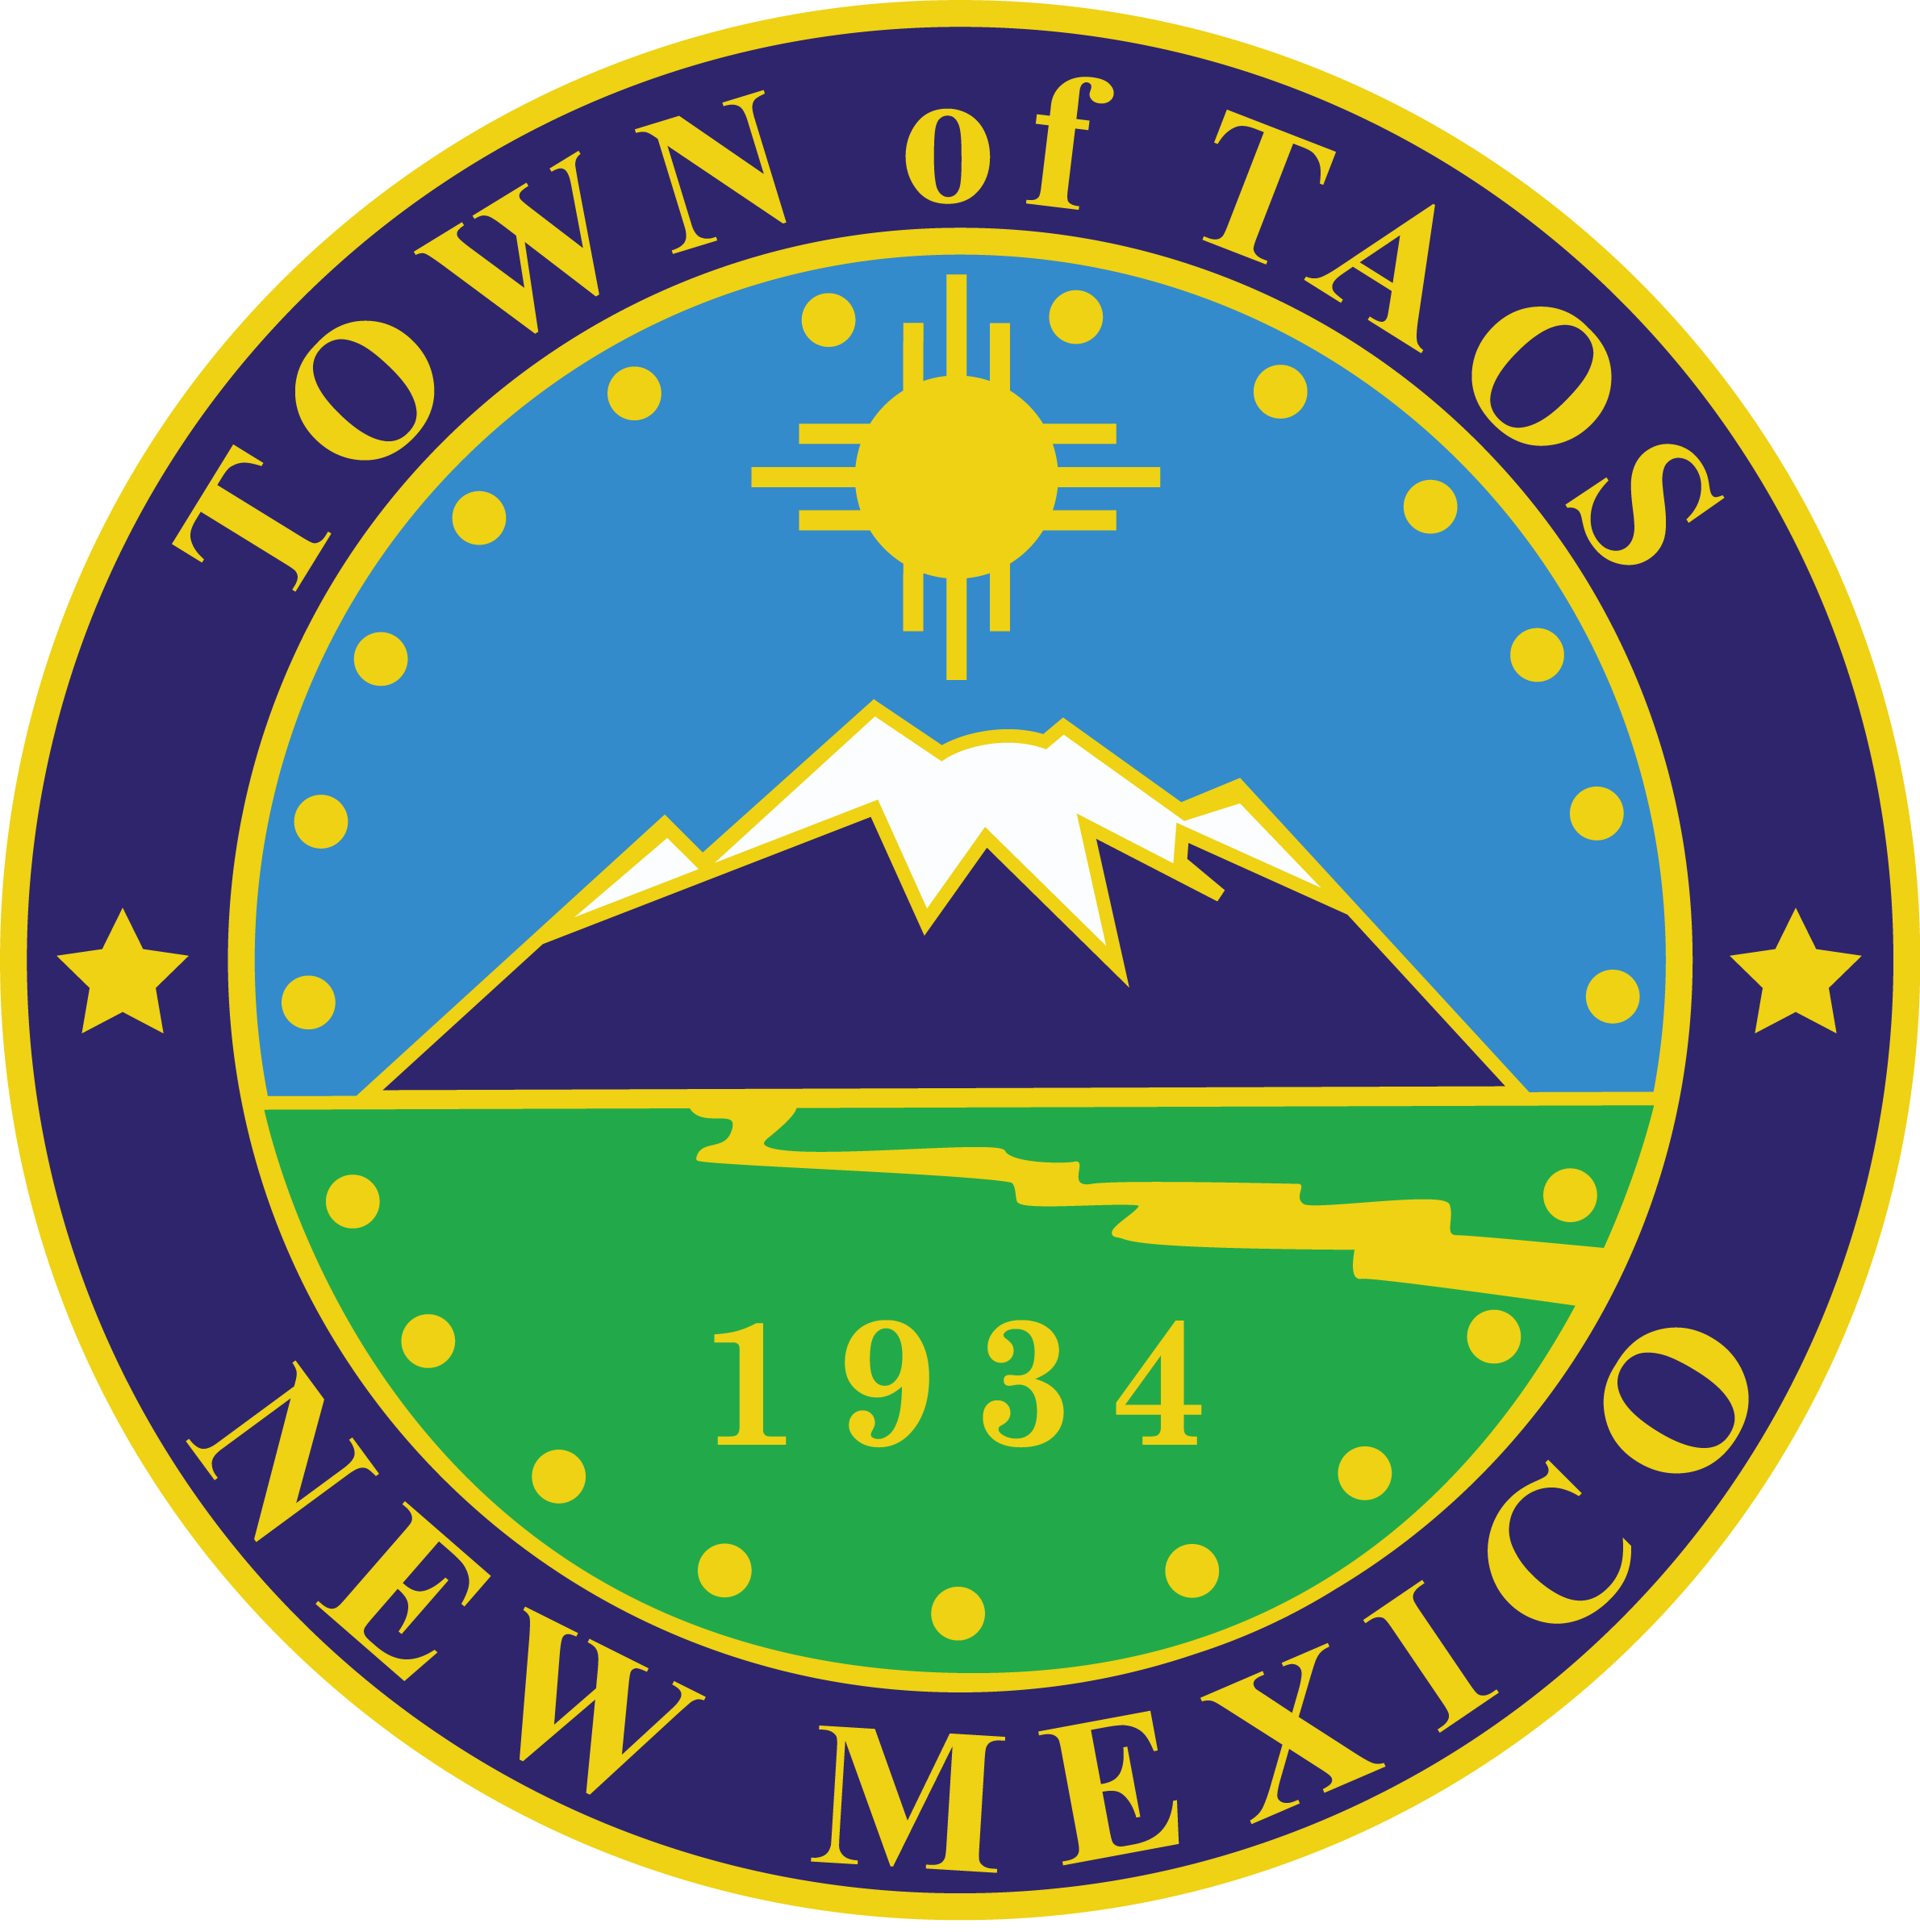 The Town of Toas NM